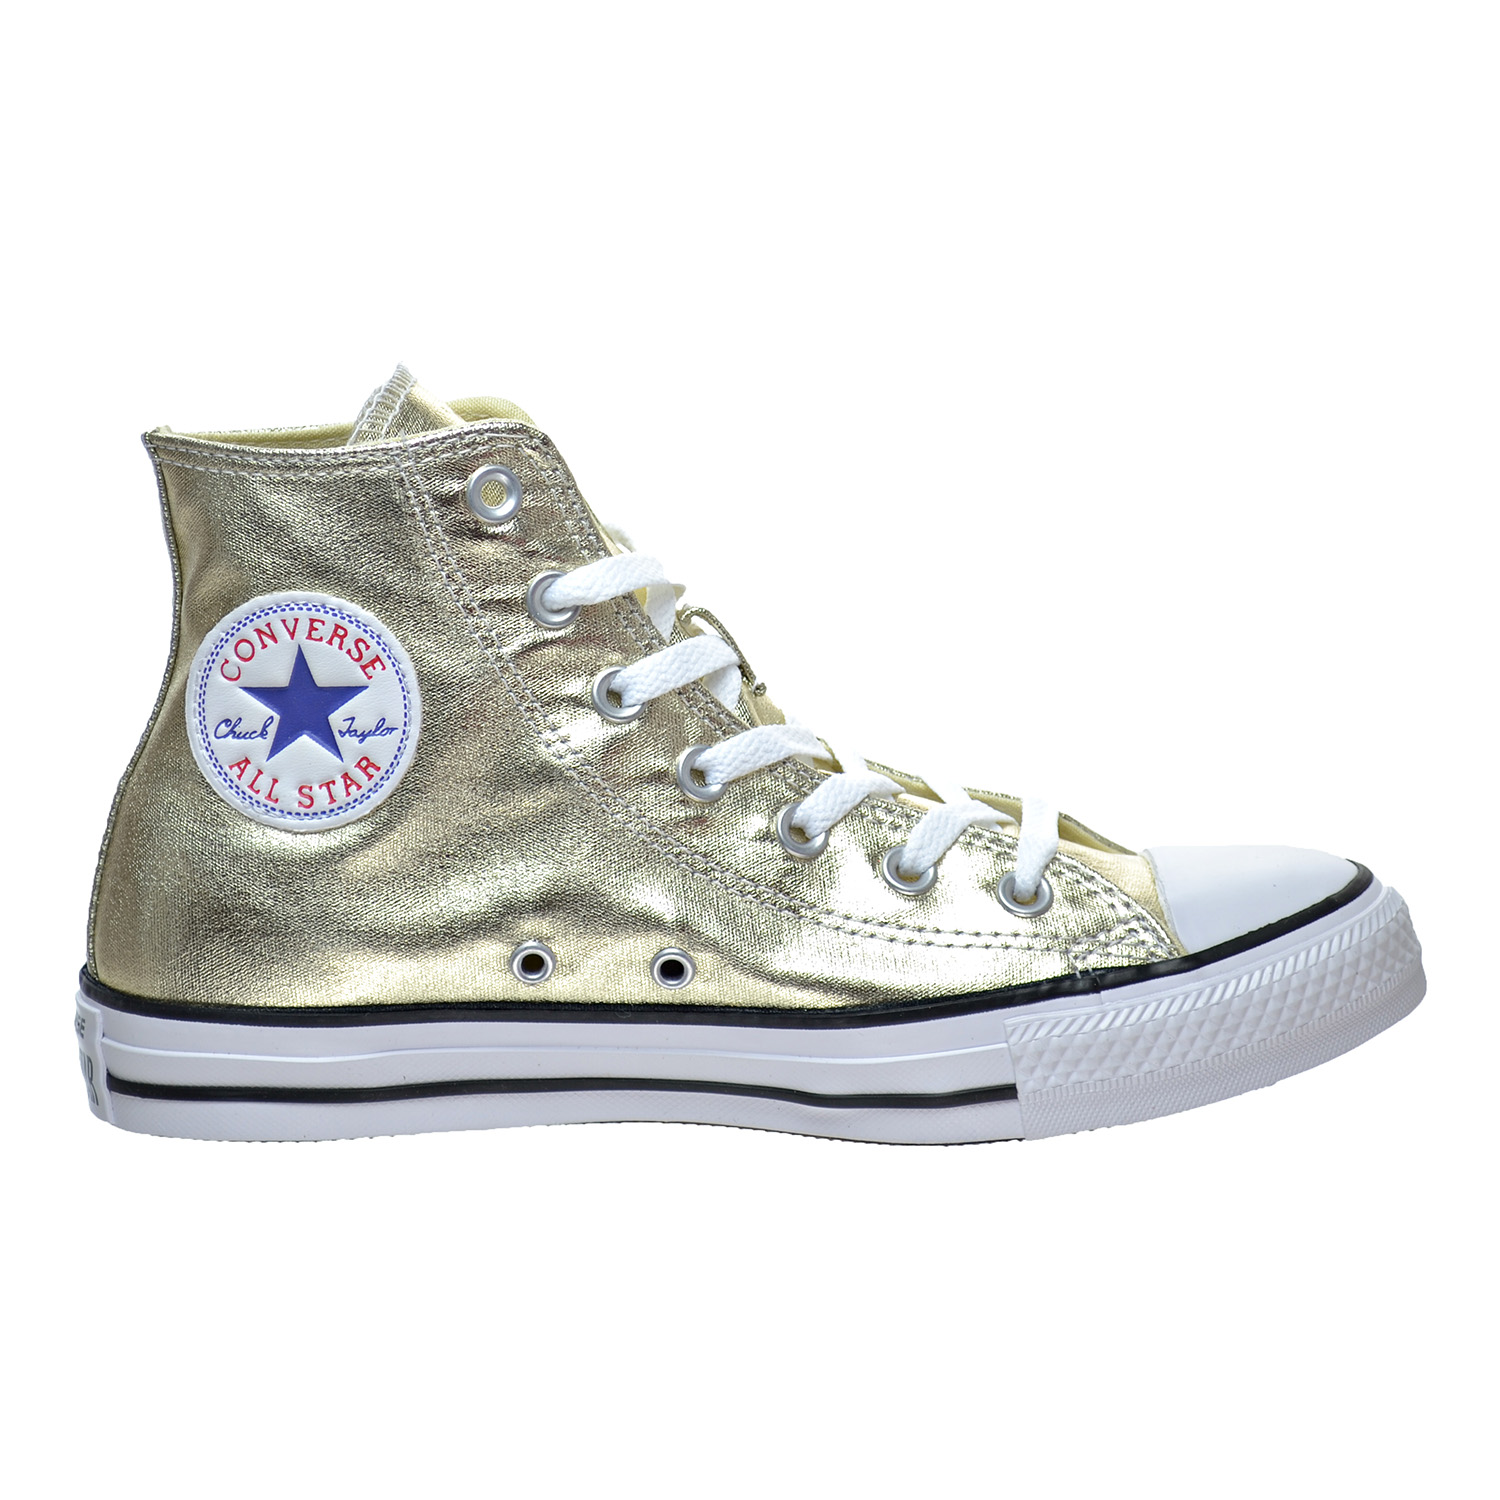 Converse Chuck Taylor All Star High Top Men's Shoes Light Gold White Black 153178f by Converse